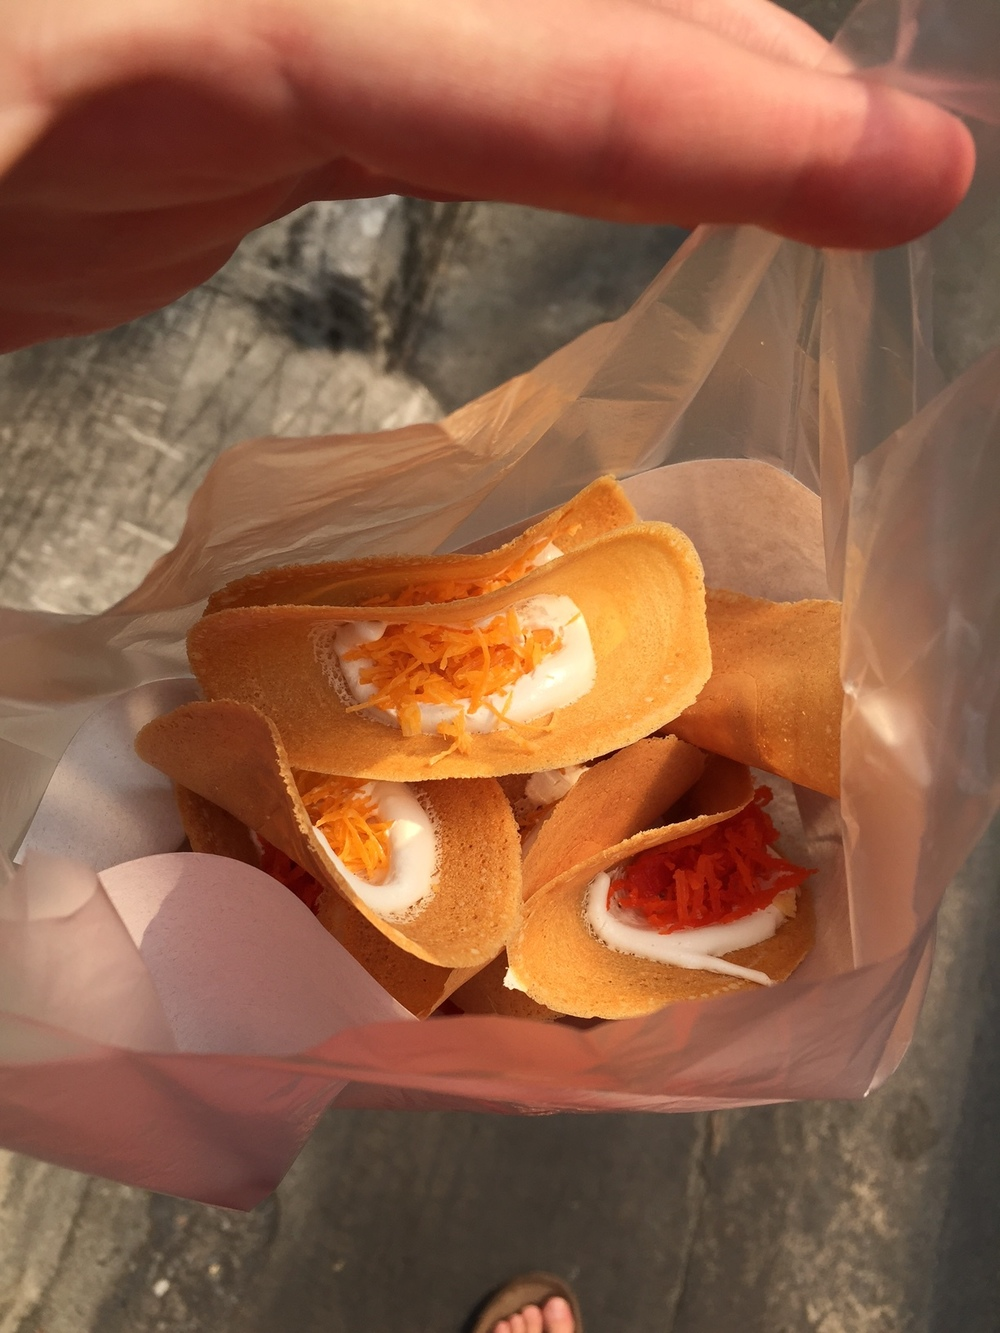 Thai Taco - Fortune Cookie with Melted Marshmellow and Sprinkled with Sugar Fried Coconut